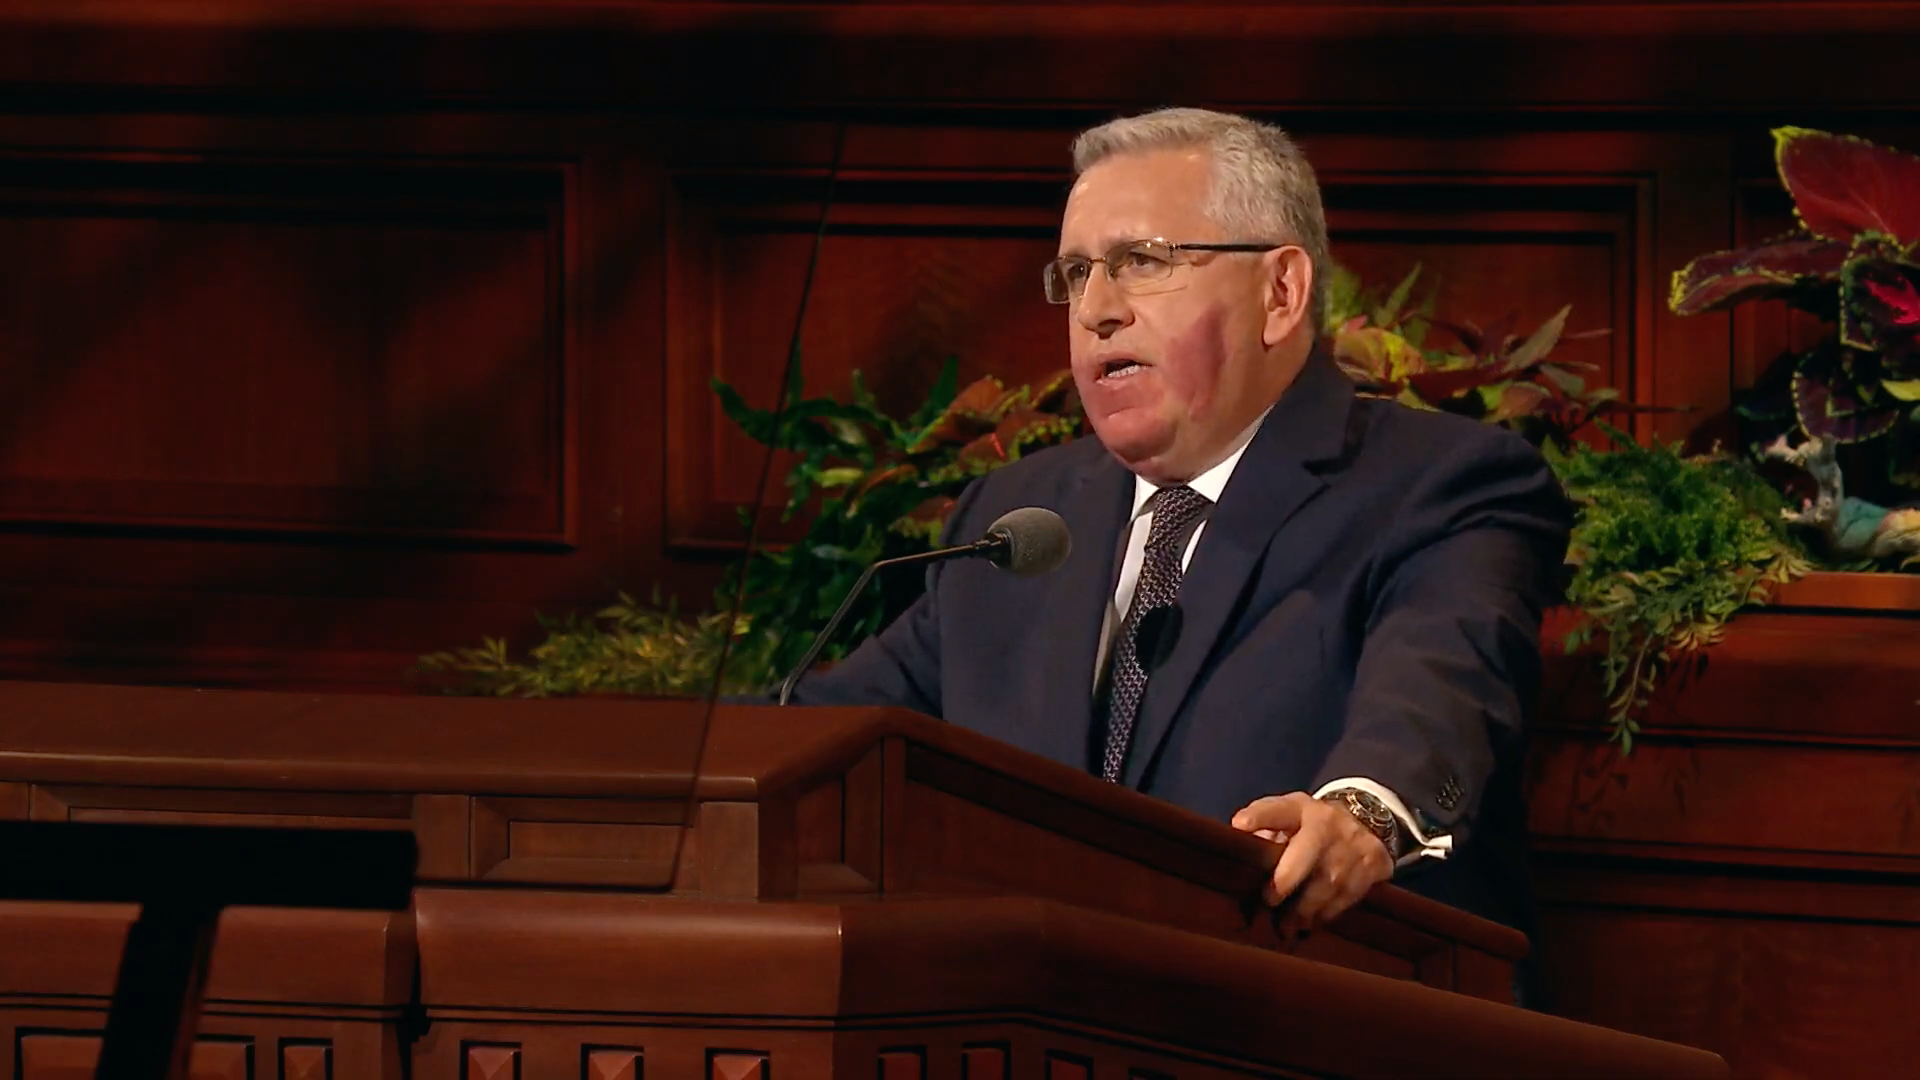 Elder Ruben V. Alliaud, a General Authority Seventy, speaks during the Saturday afternoon session in the 189th Semiannual General Conference of the Church on Oct. 5, 2019.